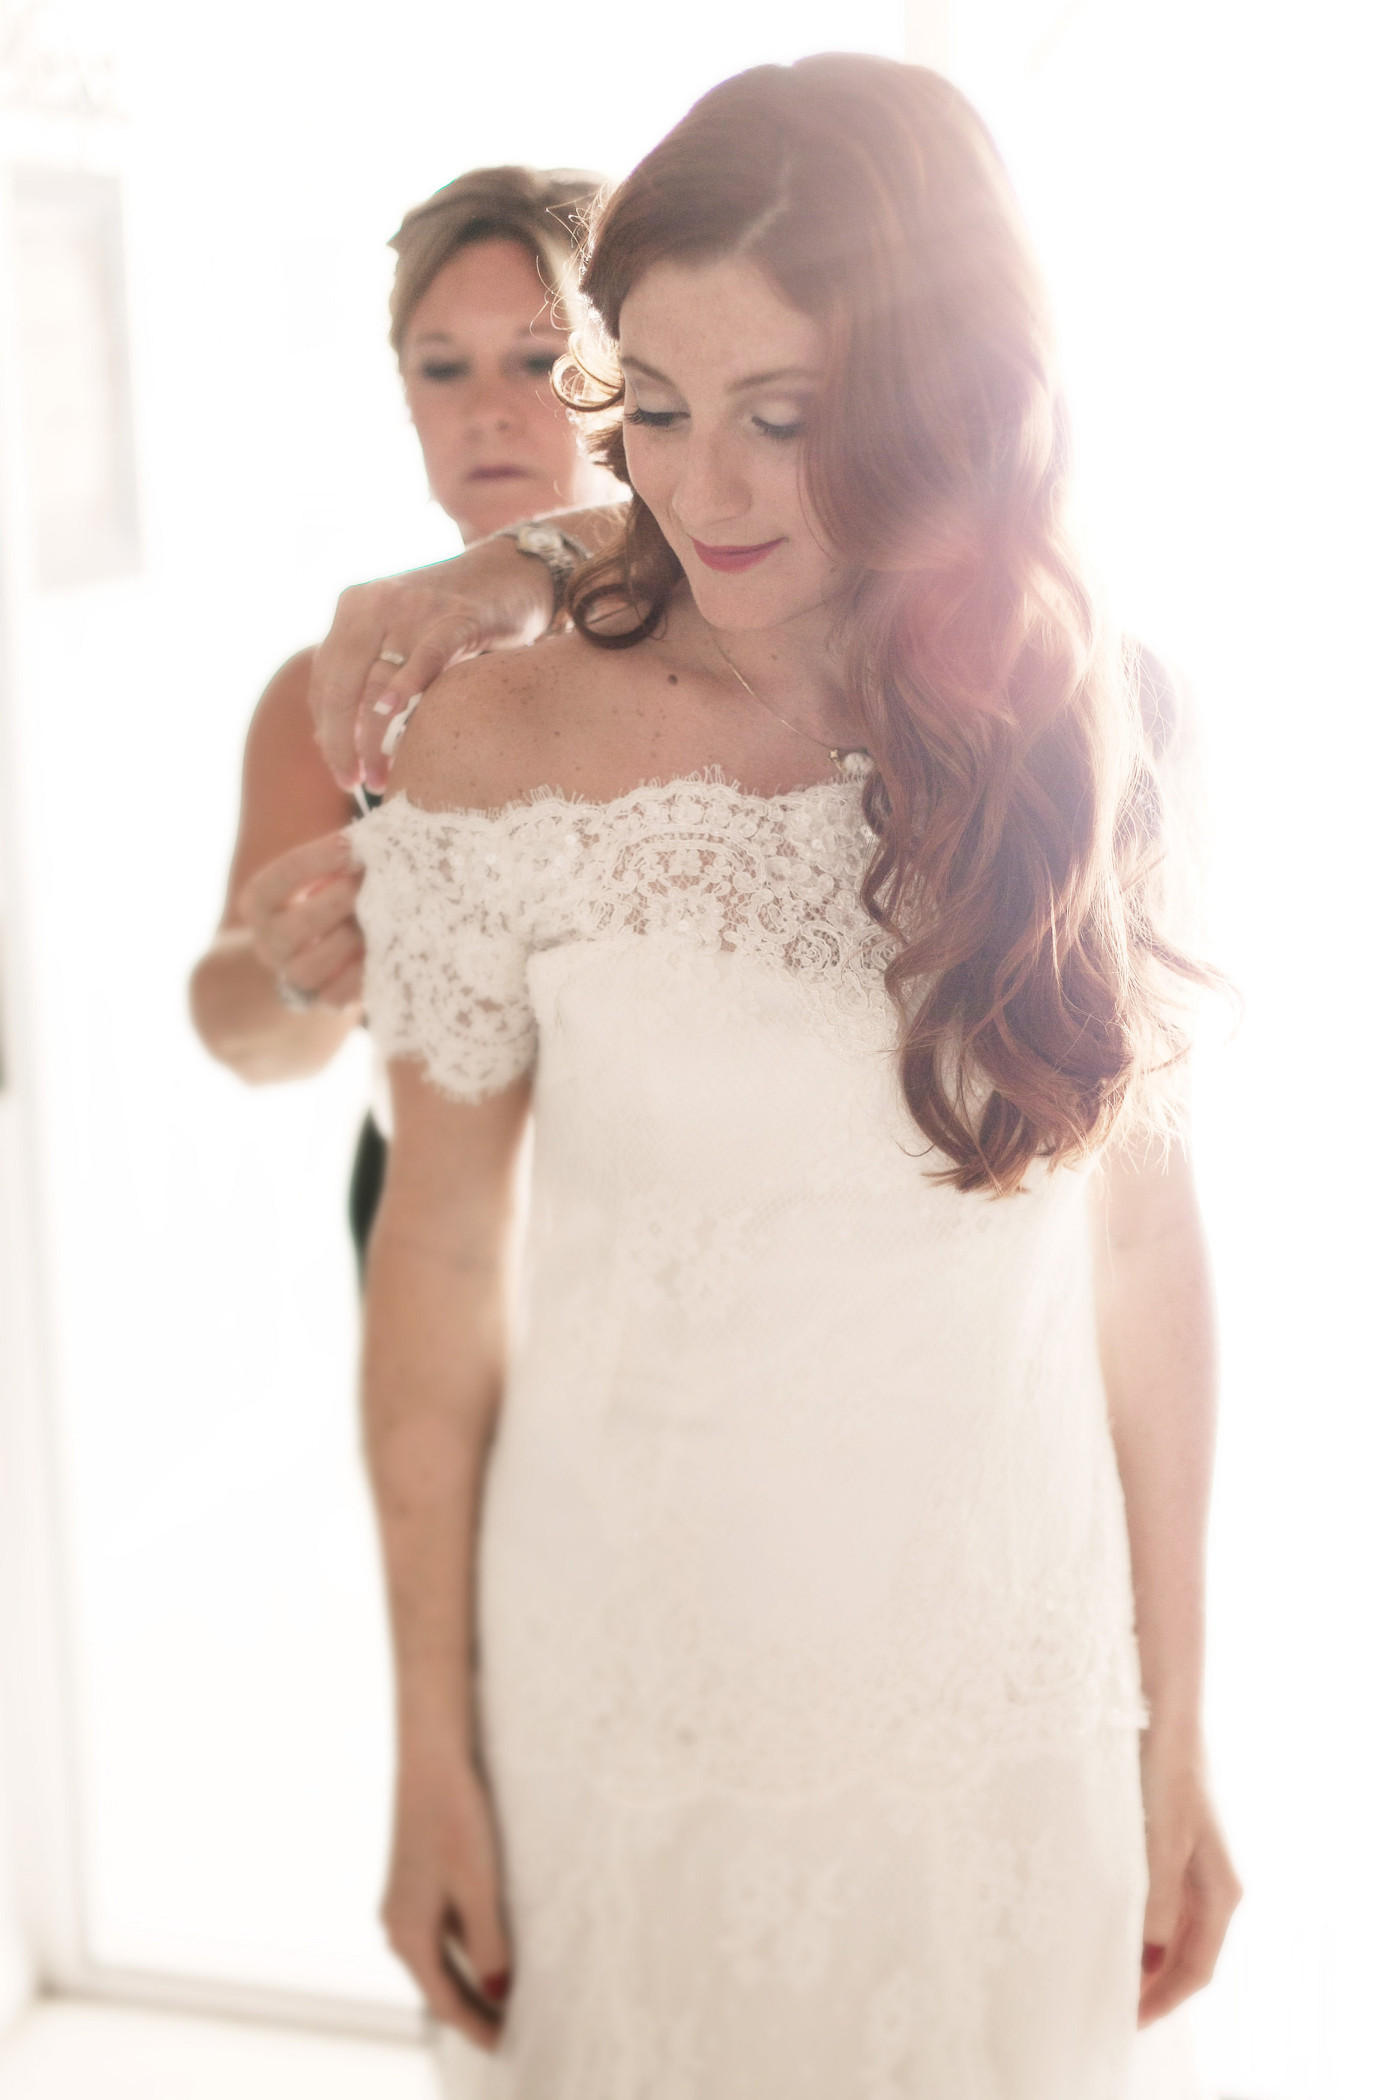 View More: http://kandkphotography.pass.us/natalie-bertrand-wedding